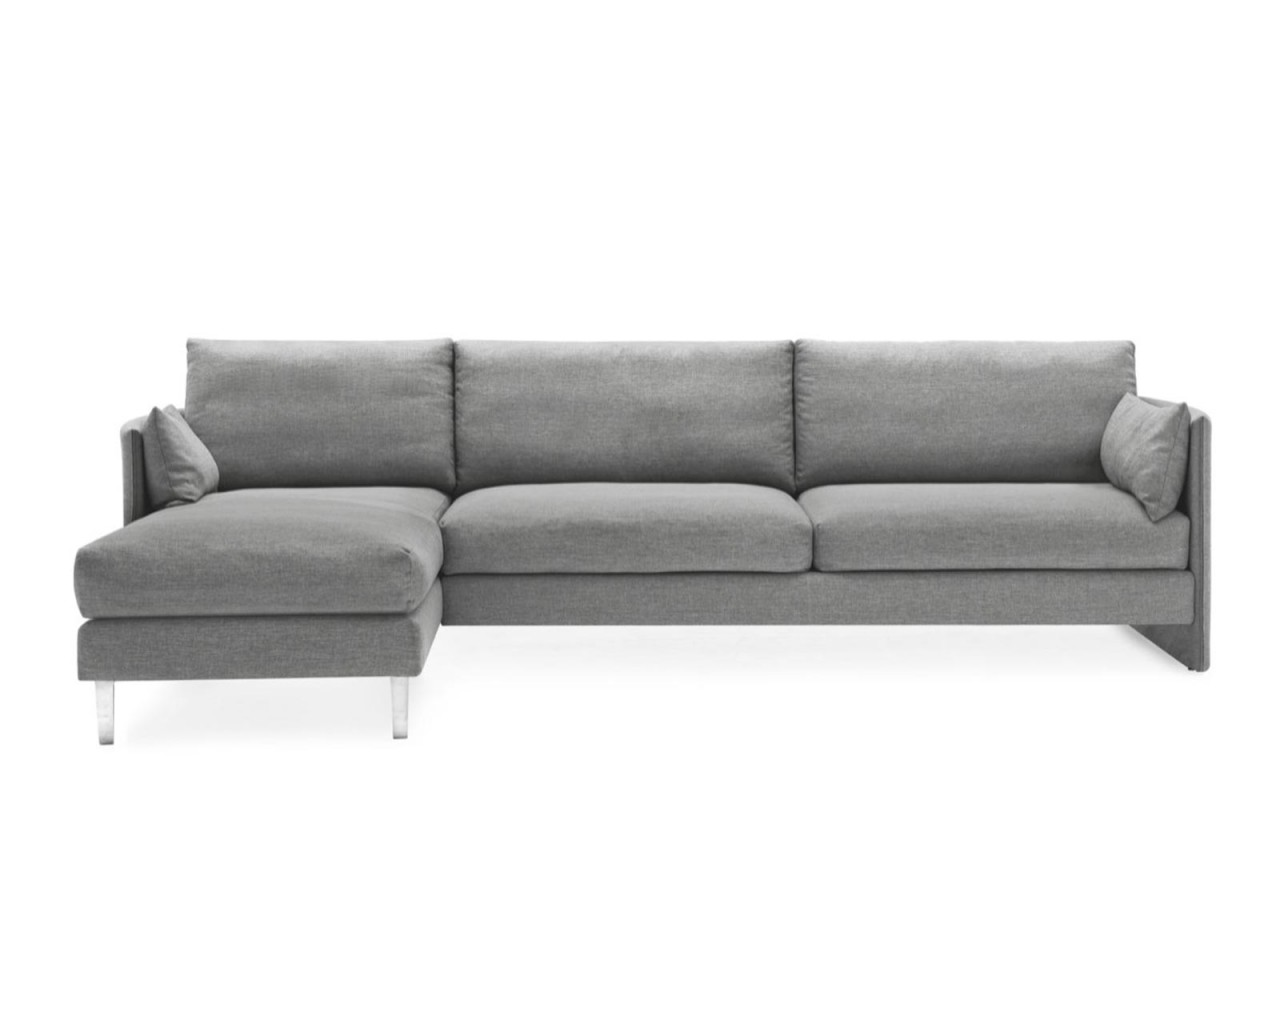 Interio Sofa Modular Sofa Urban Interio